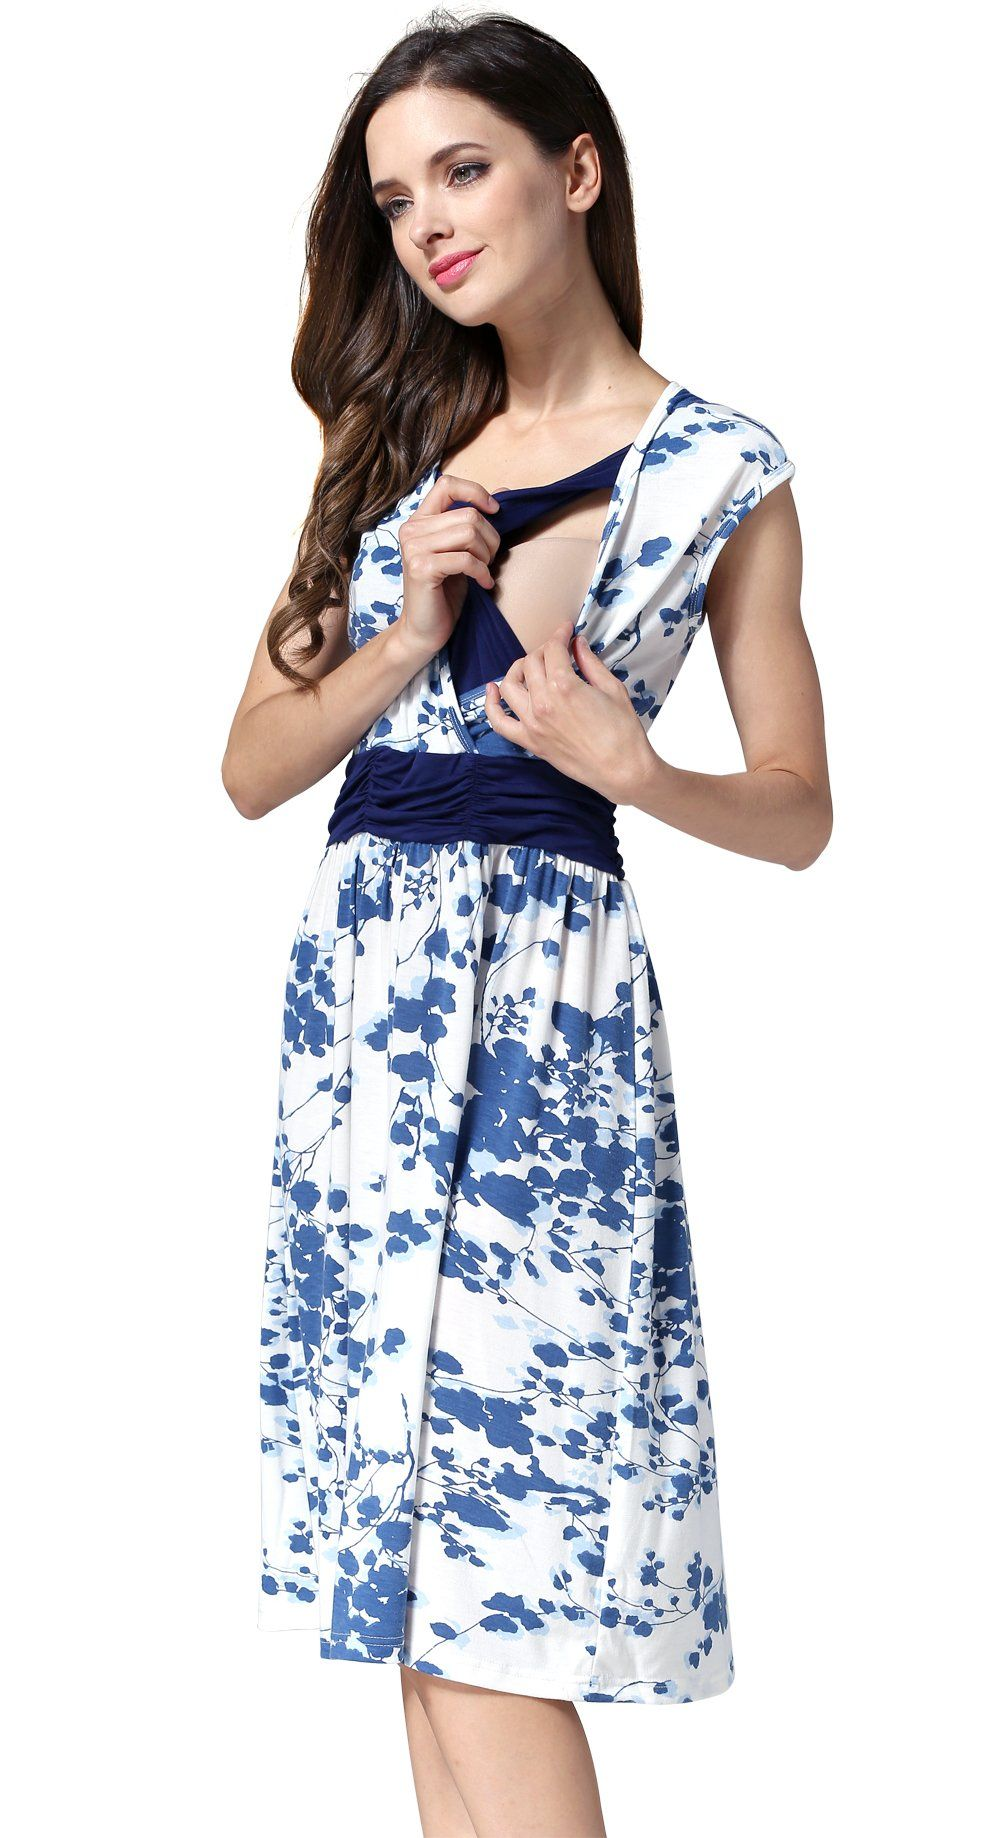 4f5e913c6728 Maternity Styles - cool maternity dresses   Emotion Moms Flower Maternity  Clothes Breastfeeding Nursing Dresses for Pregnant Women XLarge Blue   For  more ...